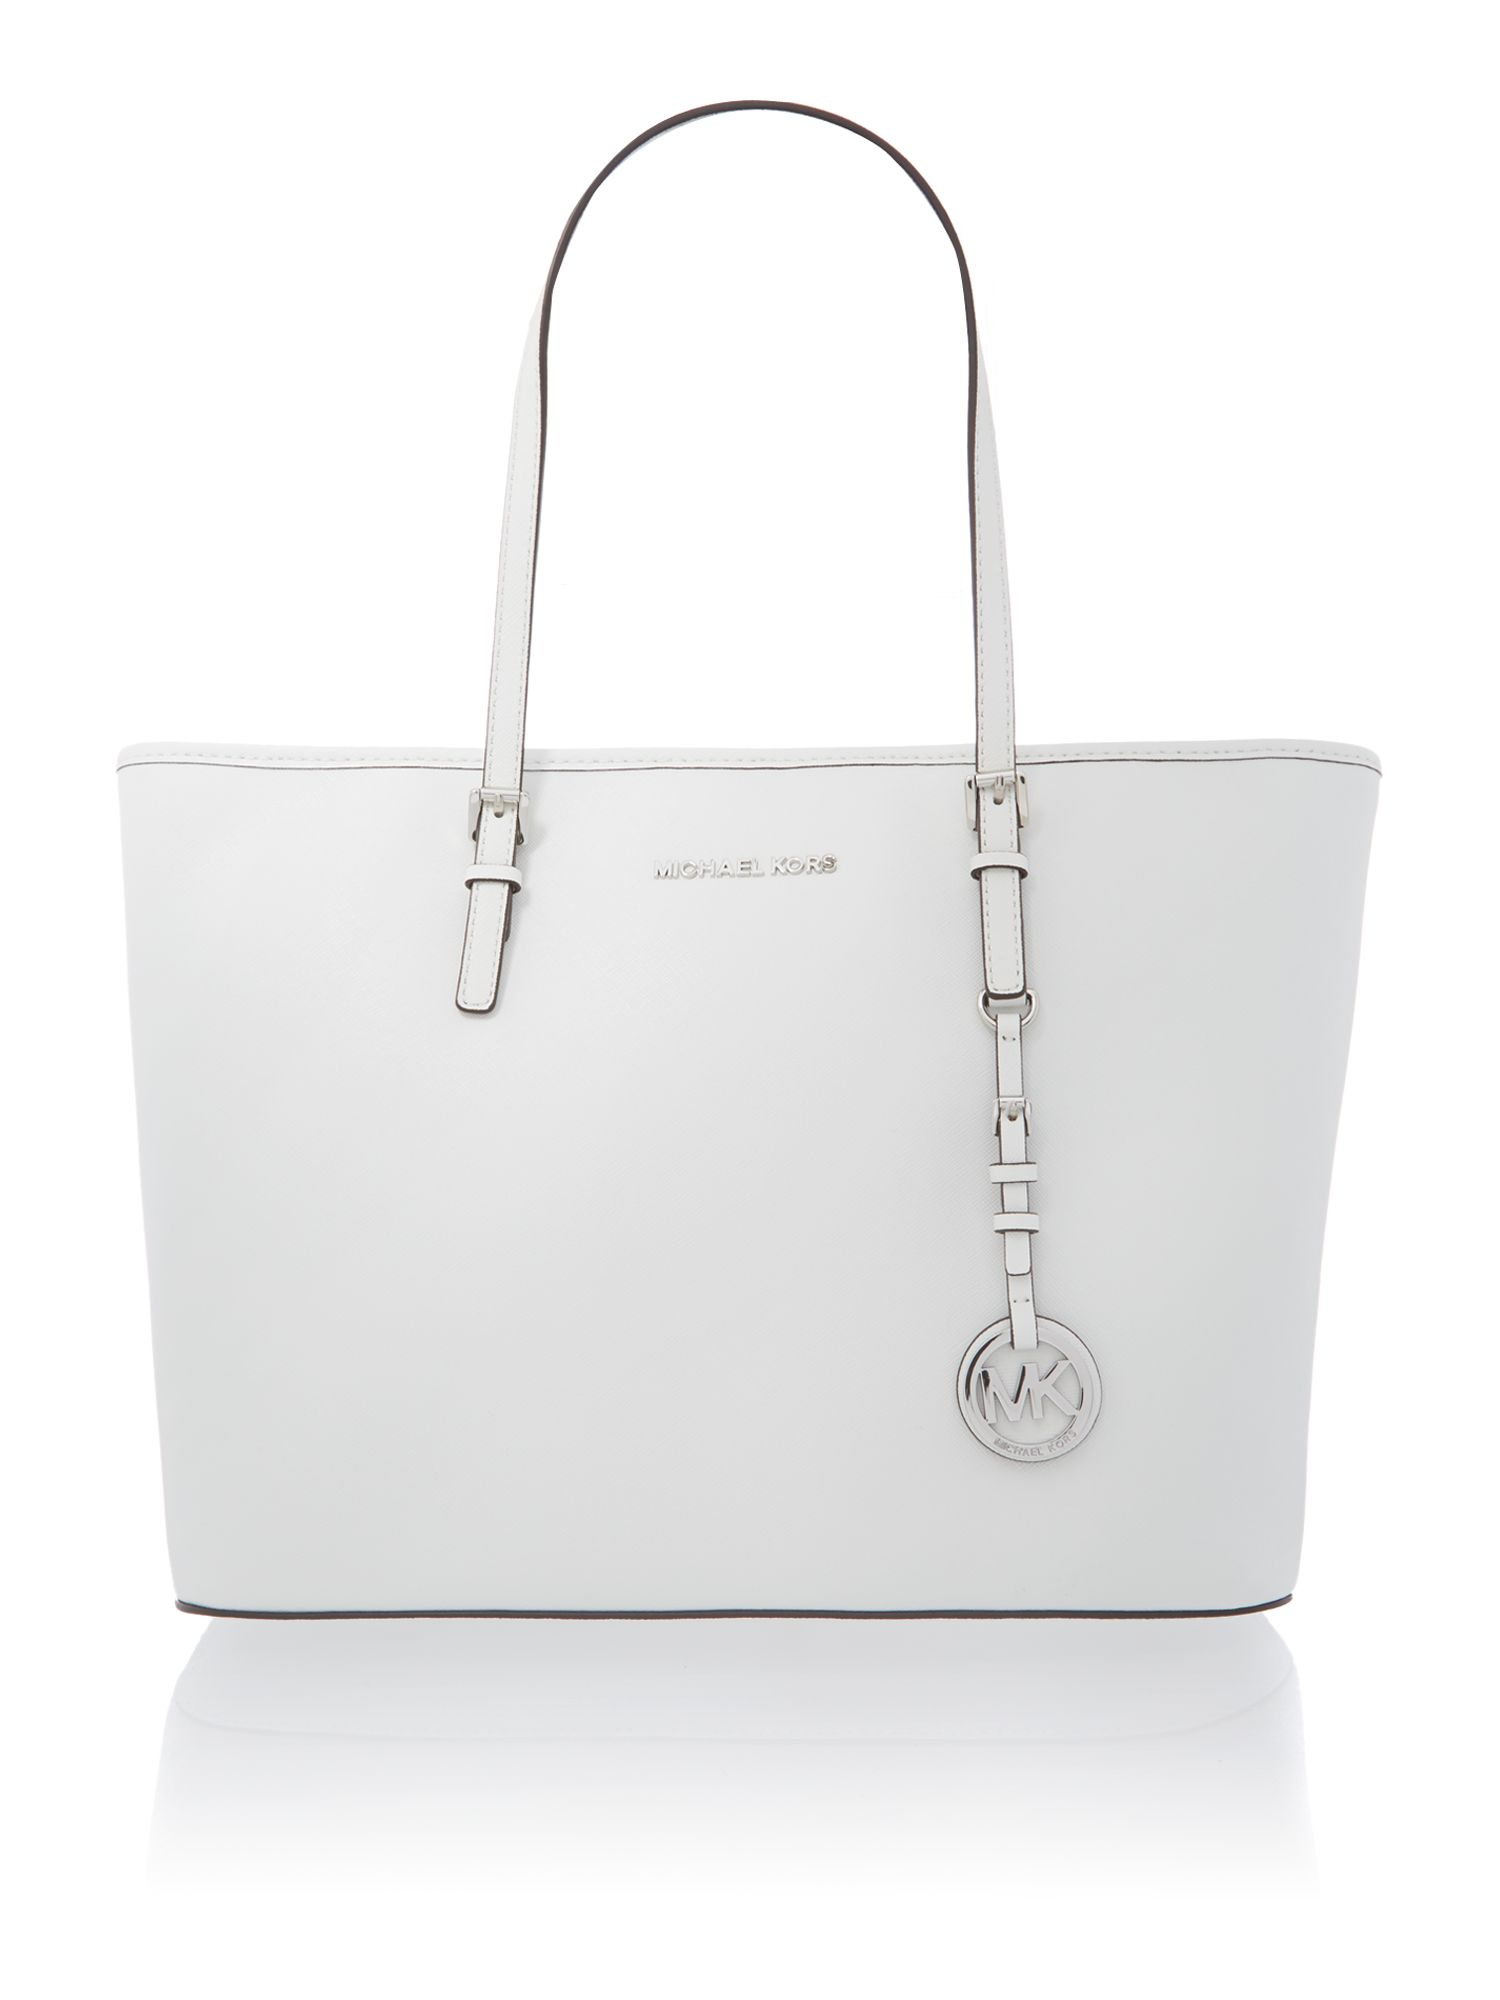 Michael kors Jet Set Travel White Tote Bag in White | Lyst